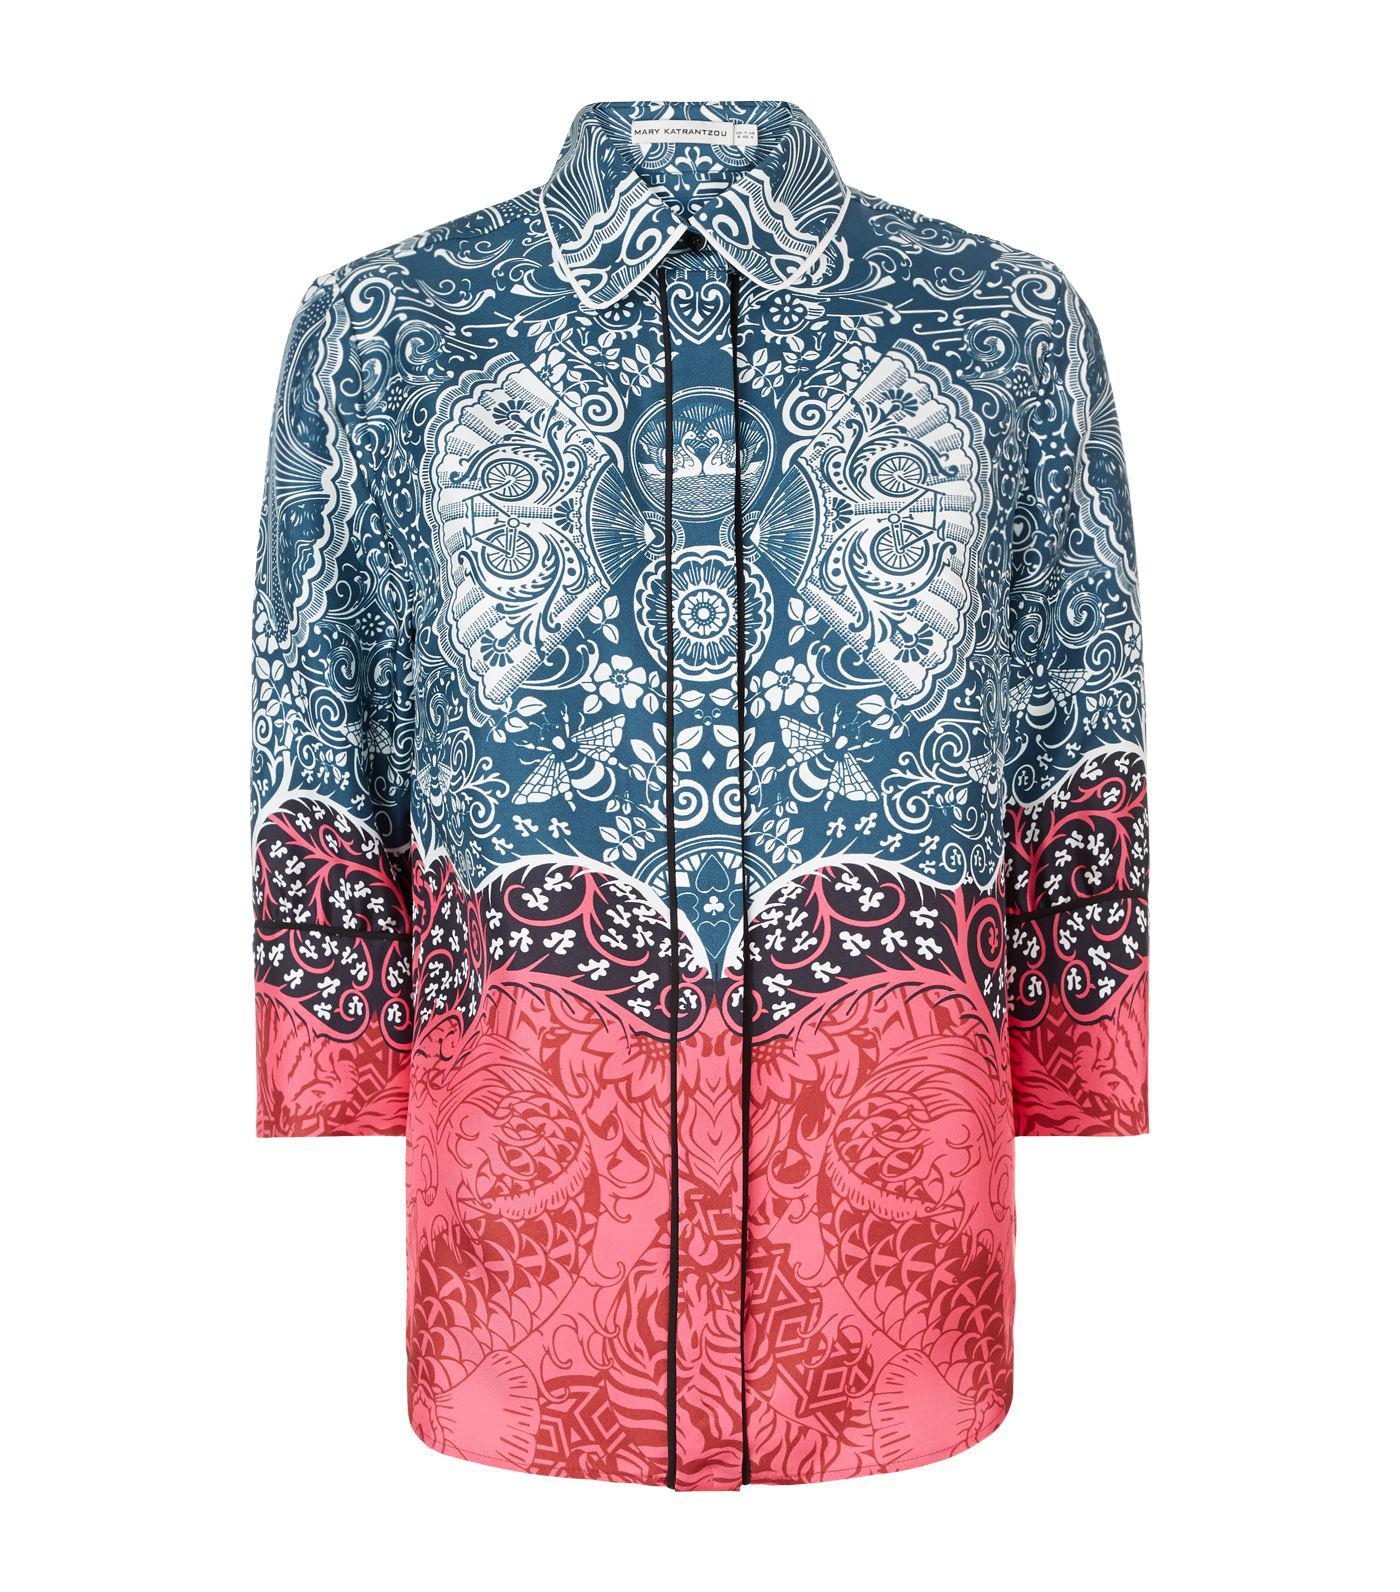 Rita Silk Shirt Mary Katrantzou Release Dates Cheap Online Cheap Sale Largest Supplier Clearance Supply Collections For Sale vPixxuBfeV